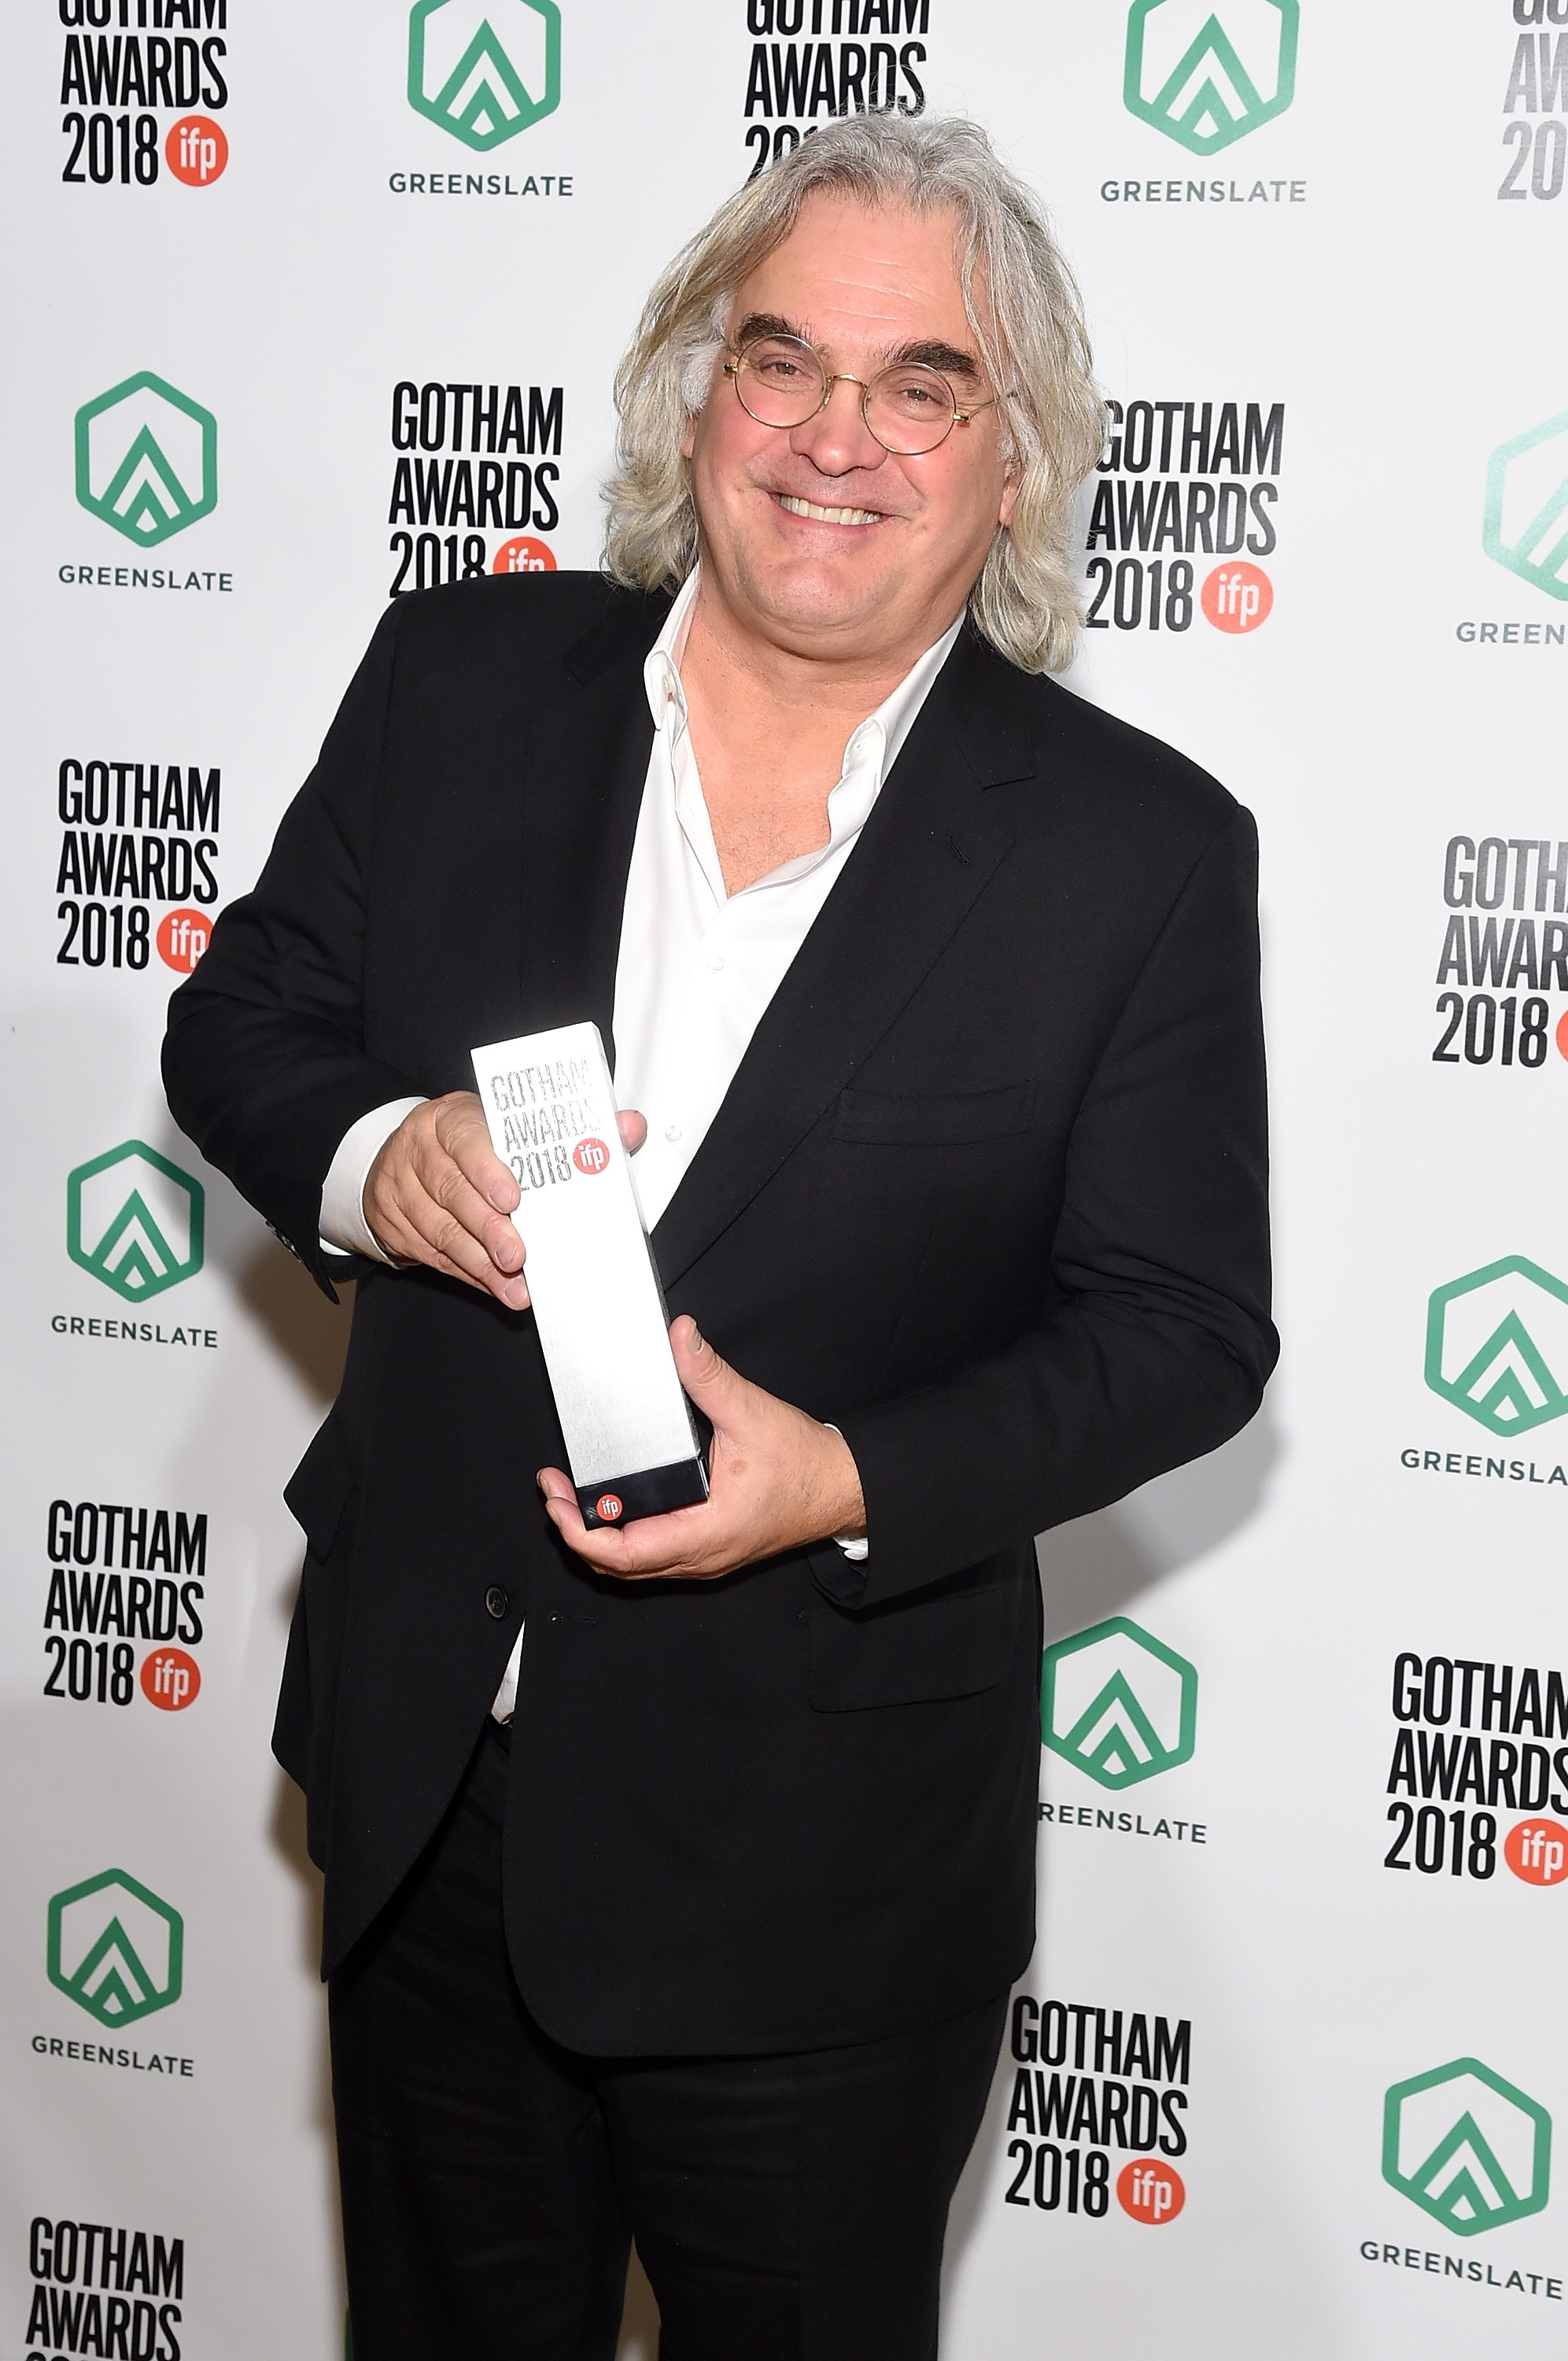 Paul Greengrass backstage in the GreenSlate Greenroom during IFP's 28th Annual Gotham Independent Film Awards at Cipriani, Wall Street on November 26, 2018 in New York City.